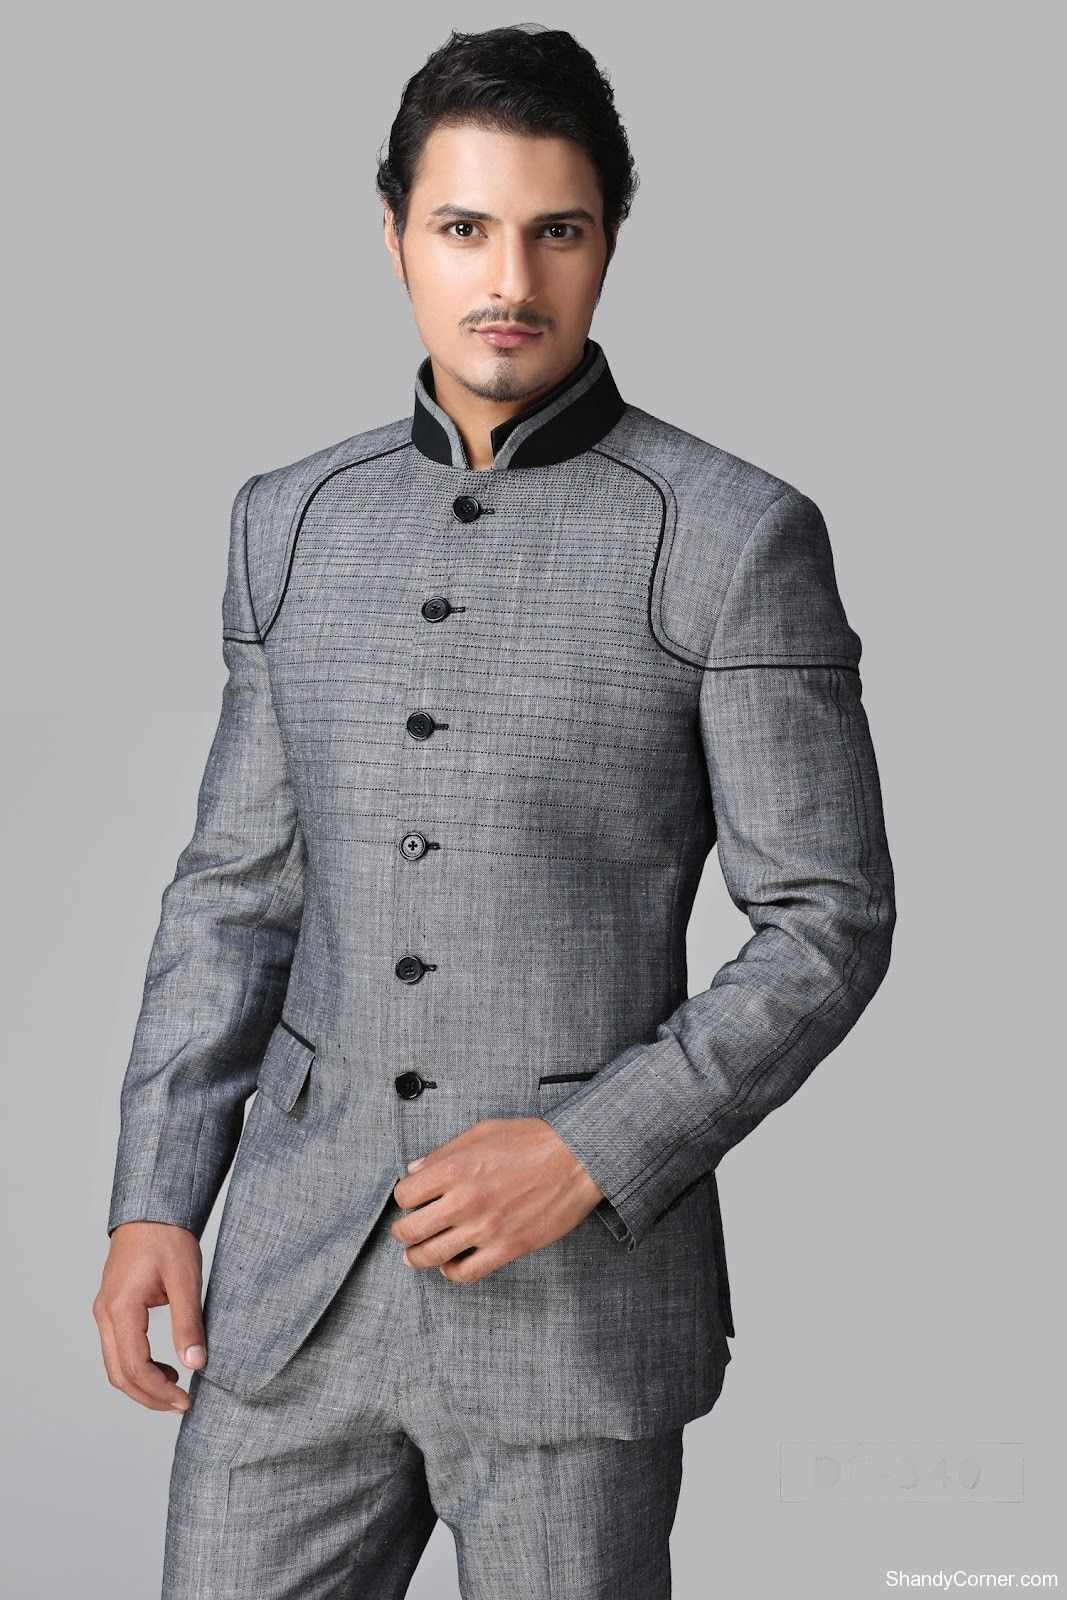 Df-300-army-style-modern-indian-and-office-3-piece-suits-for-men ...